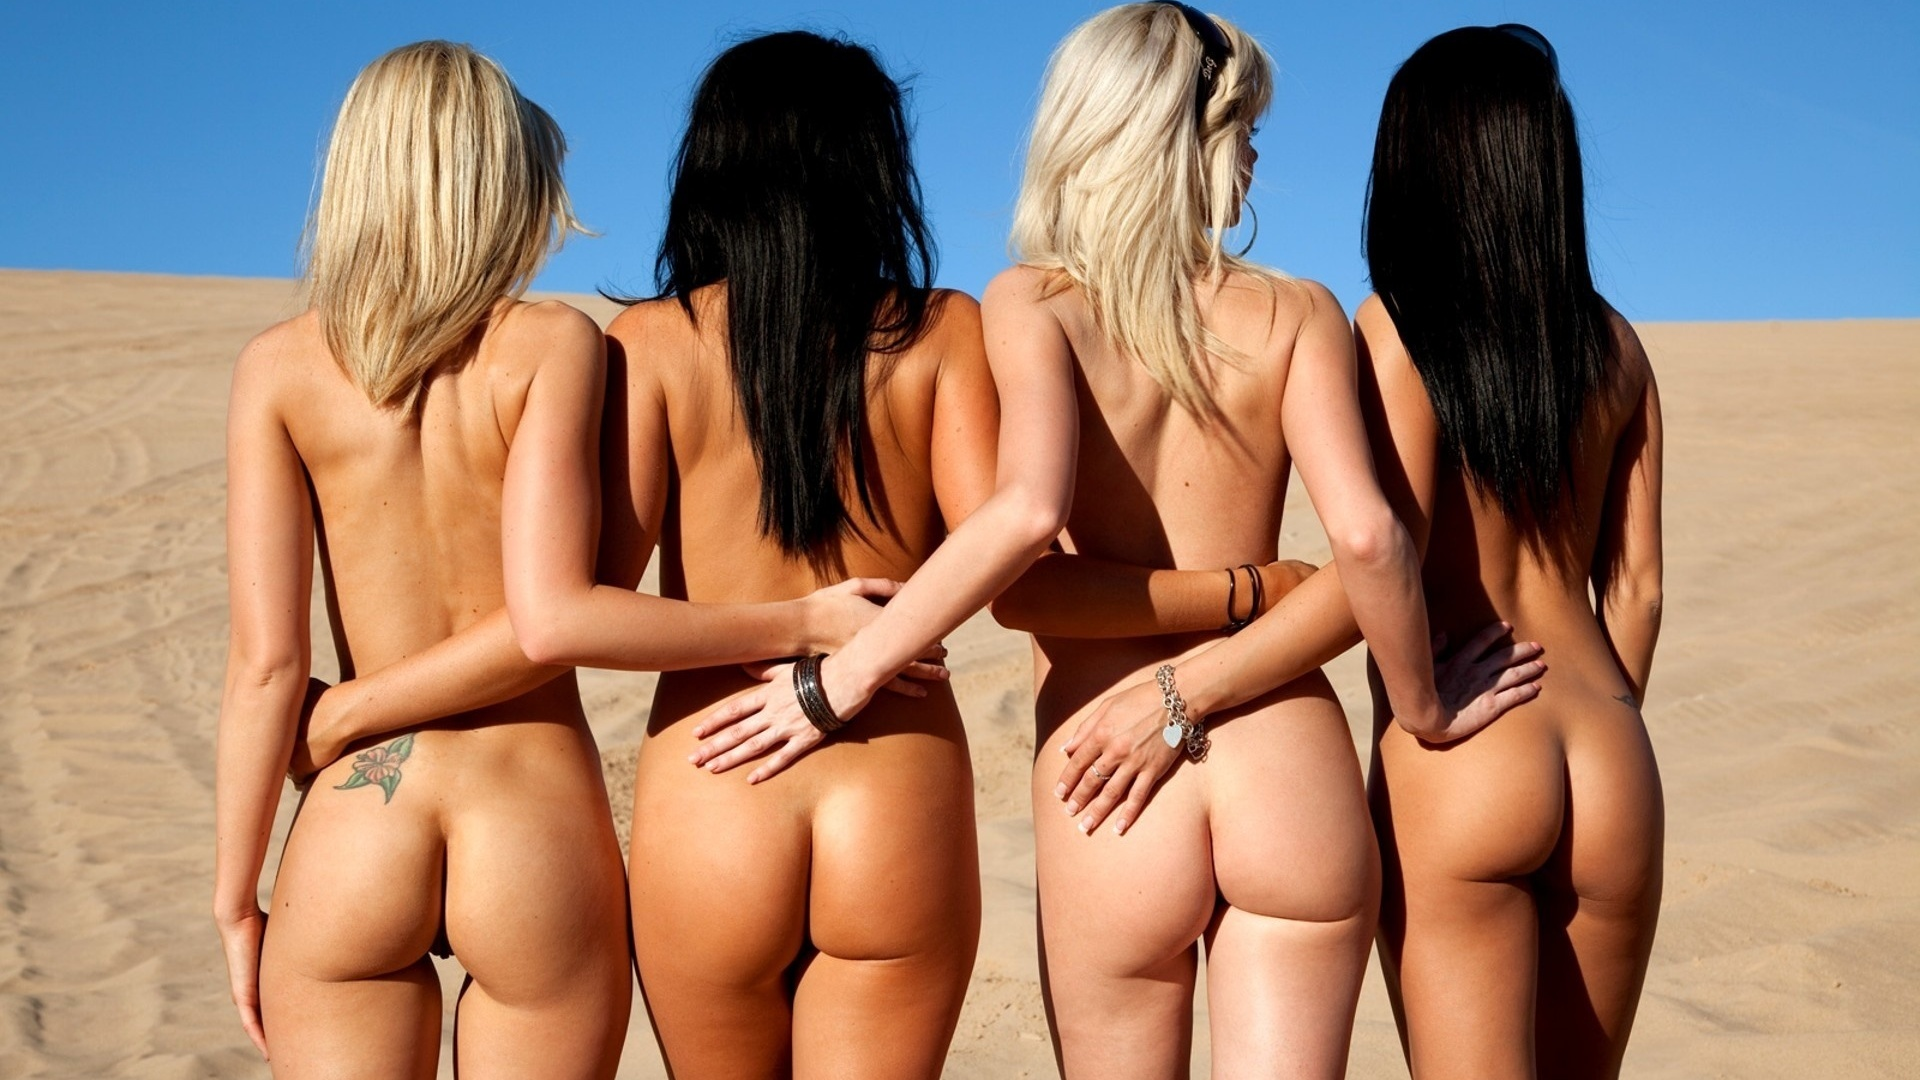 And video beautiful female asses prisionner